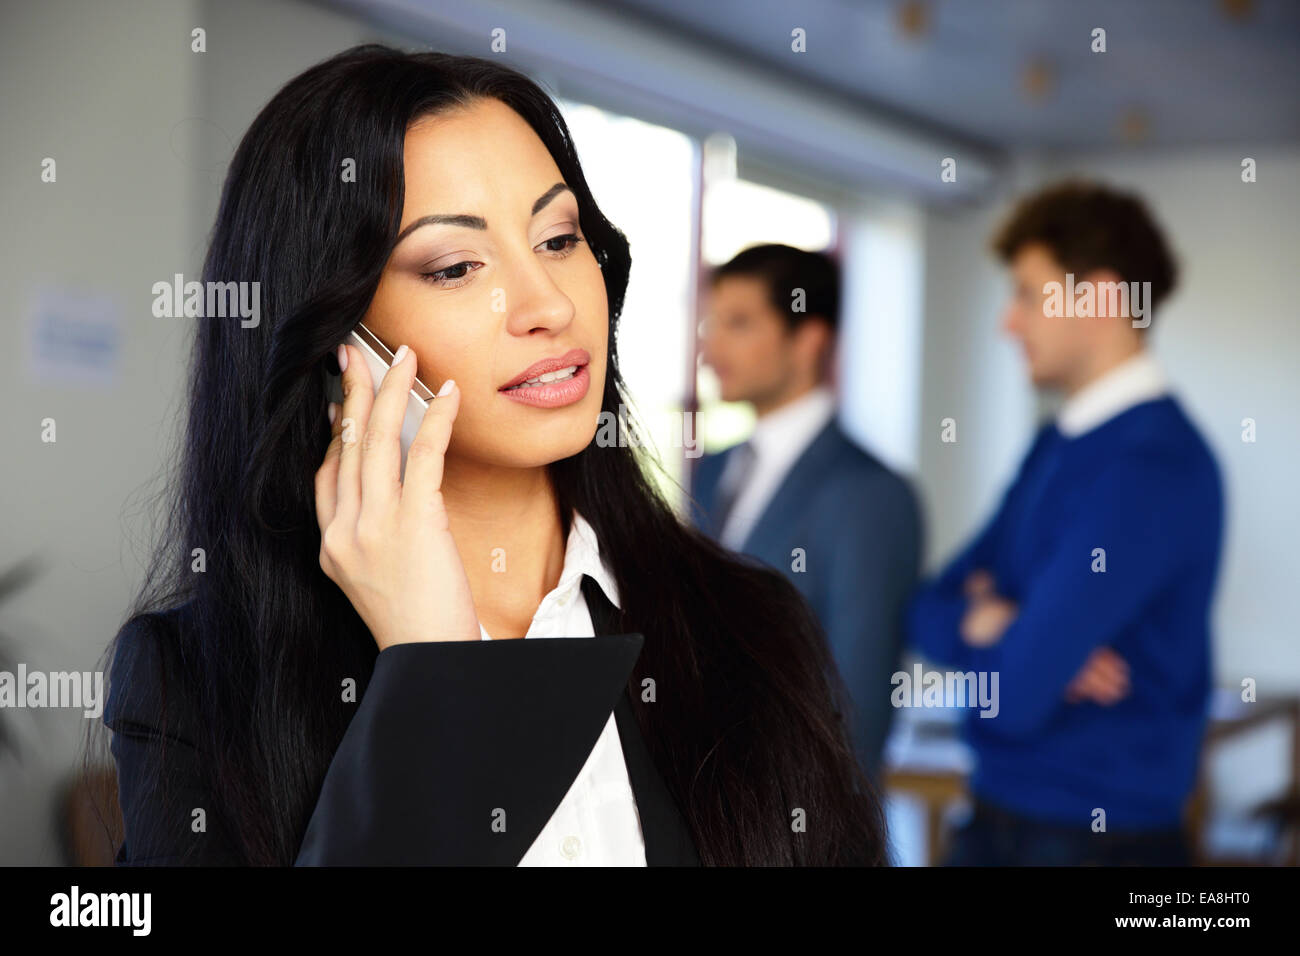 Serious businesswoman talking on the phone with colleagues on background - Stock Image